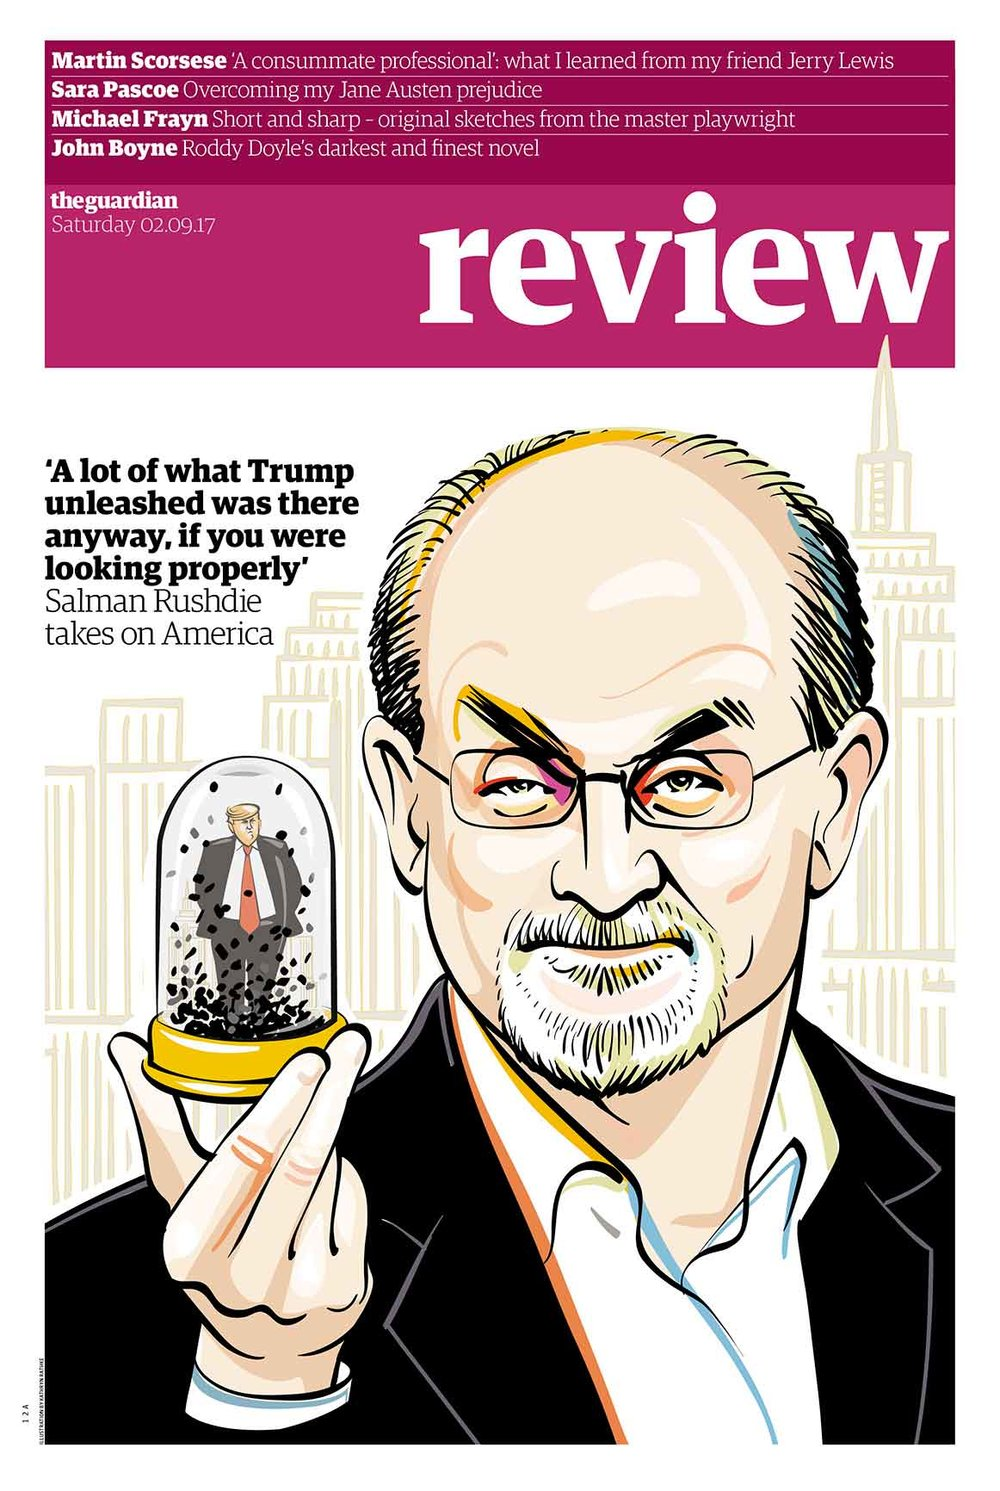 rushdie-cover-sm.jpg